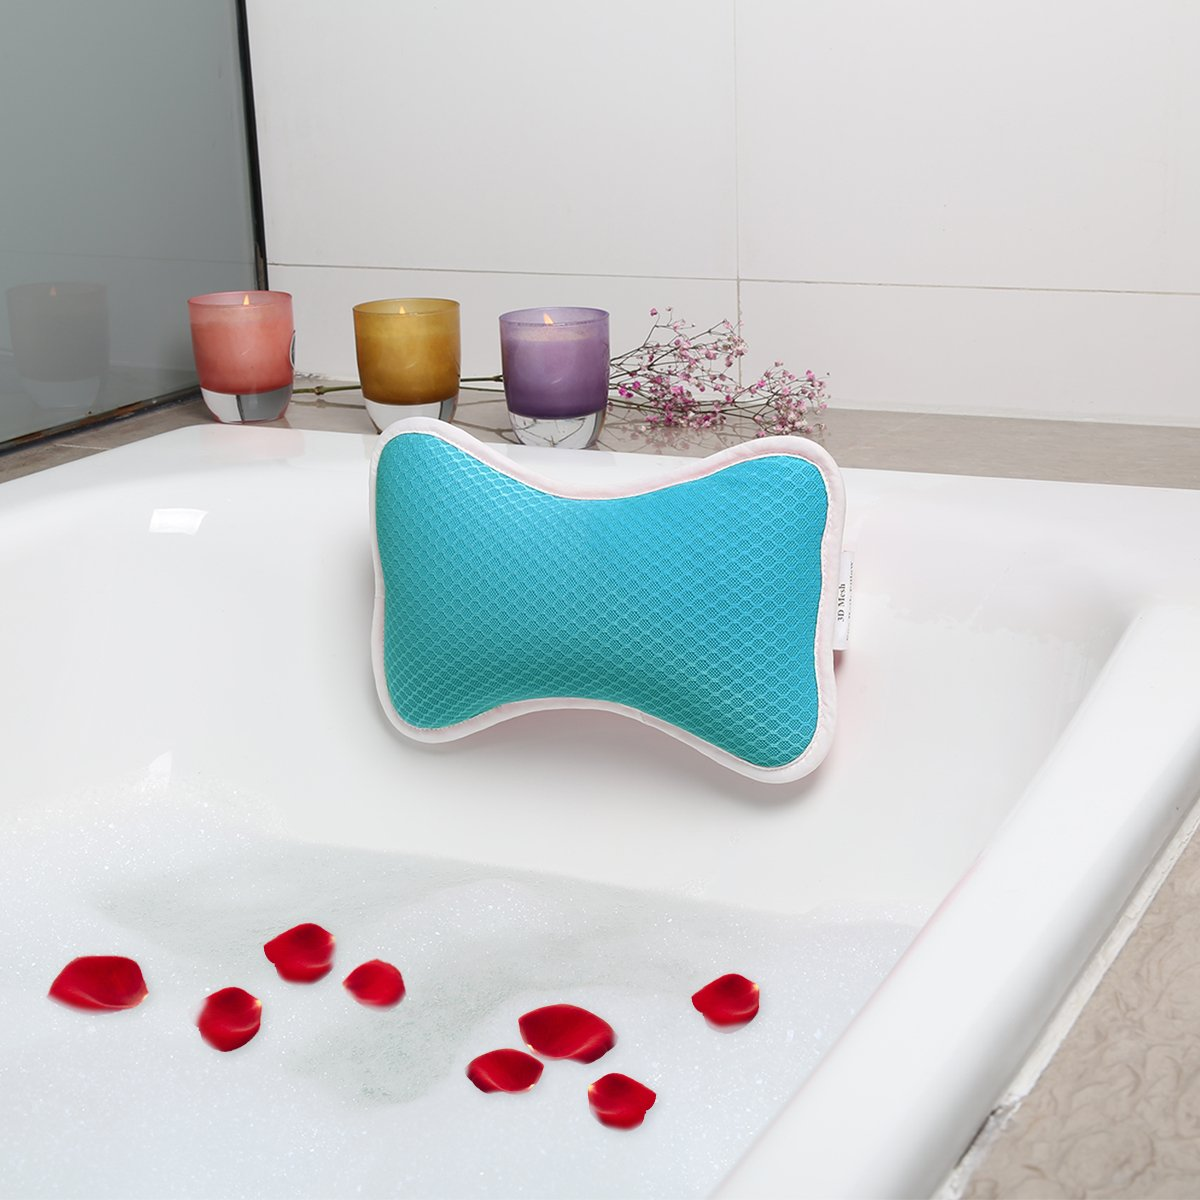 Bath Pillow for Tub, 2 Strong Suction Cups Spa Pillow Anti Bacterial Cushion, Home Spa Non Slip Support for Bathtub, Hot Tub, Jacuzzi Wasan